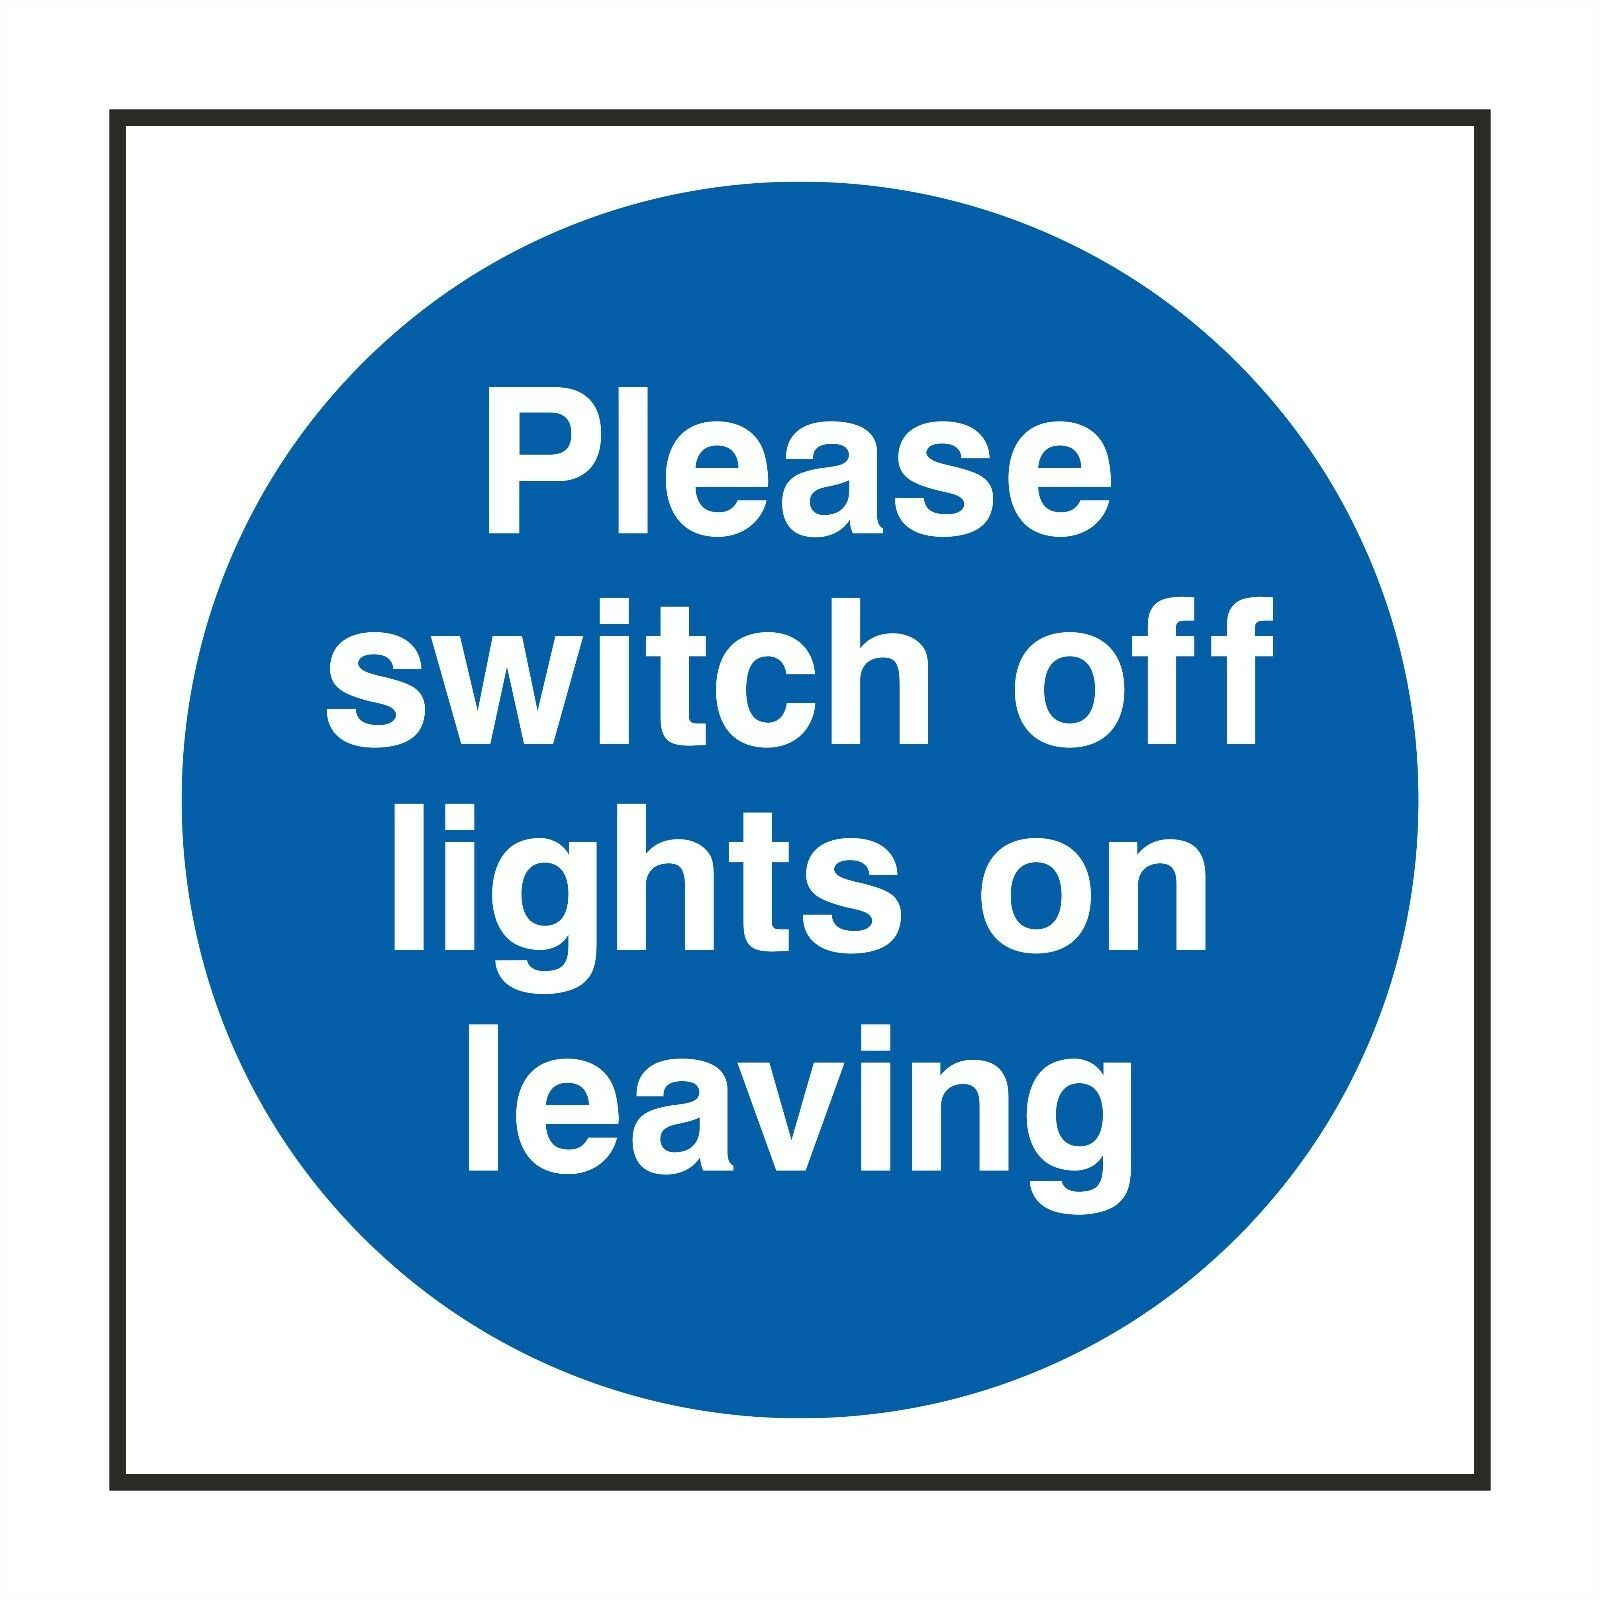 1x PLEASE SWITCH OFF LIGHTS ON LEAVING warning Sticker for Hotel Motel Home Work